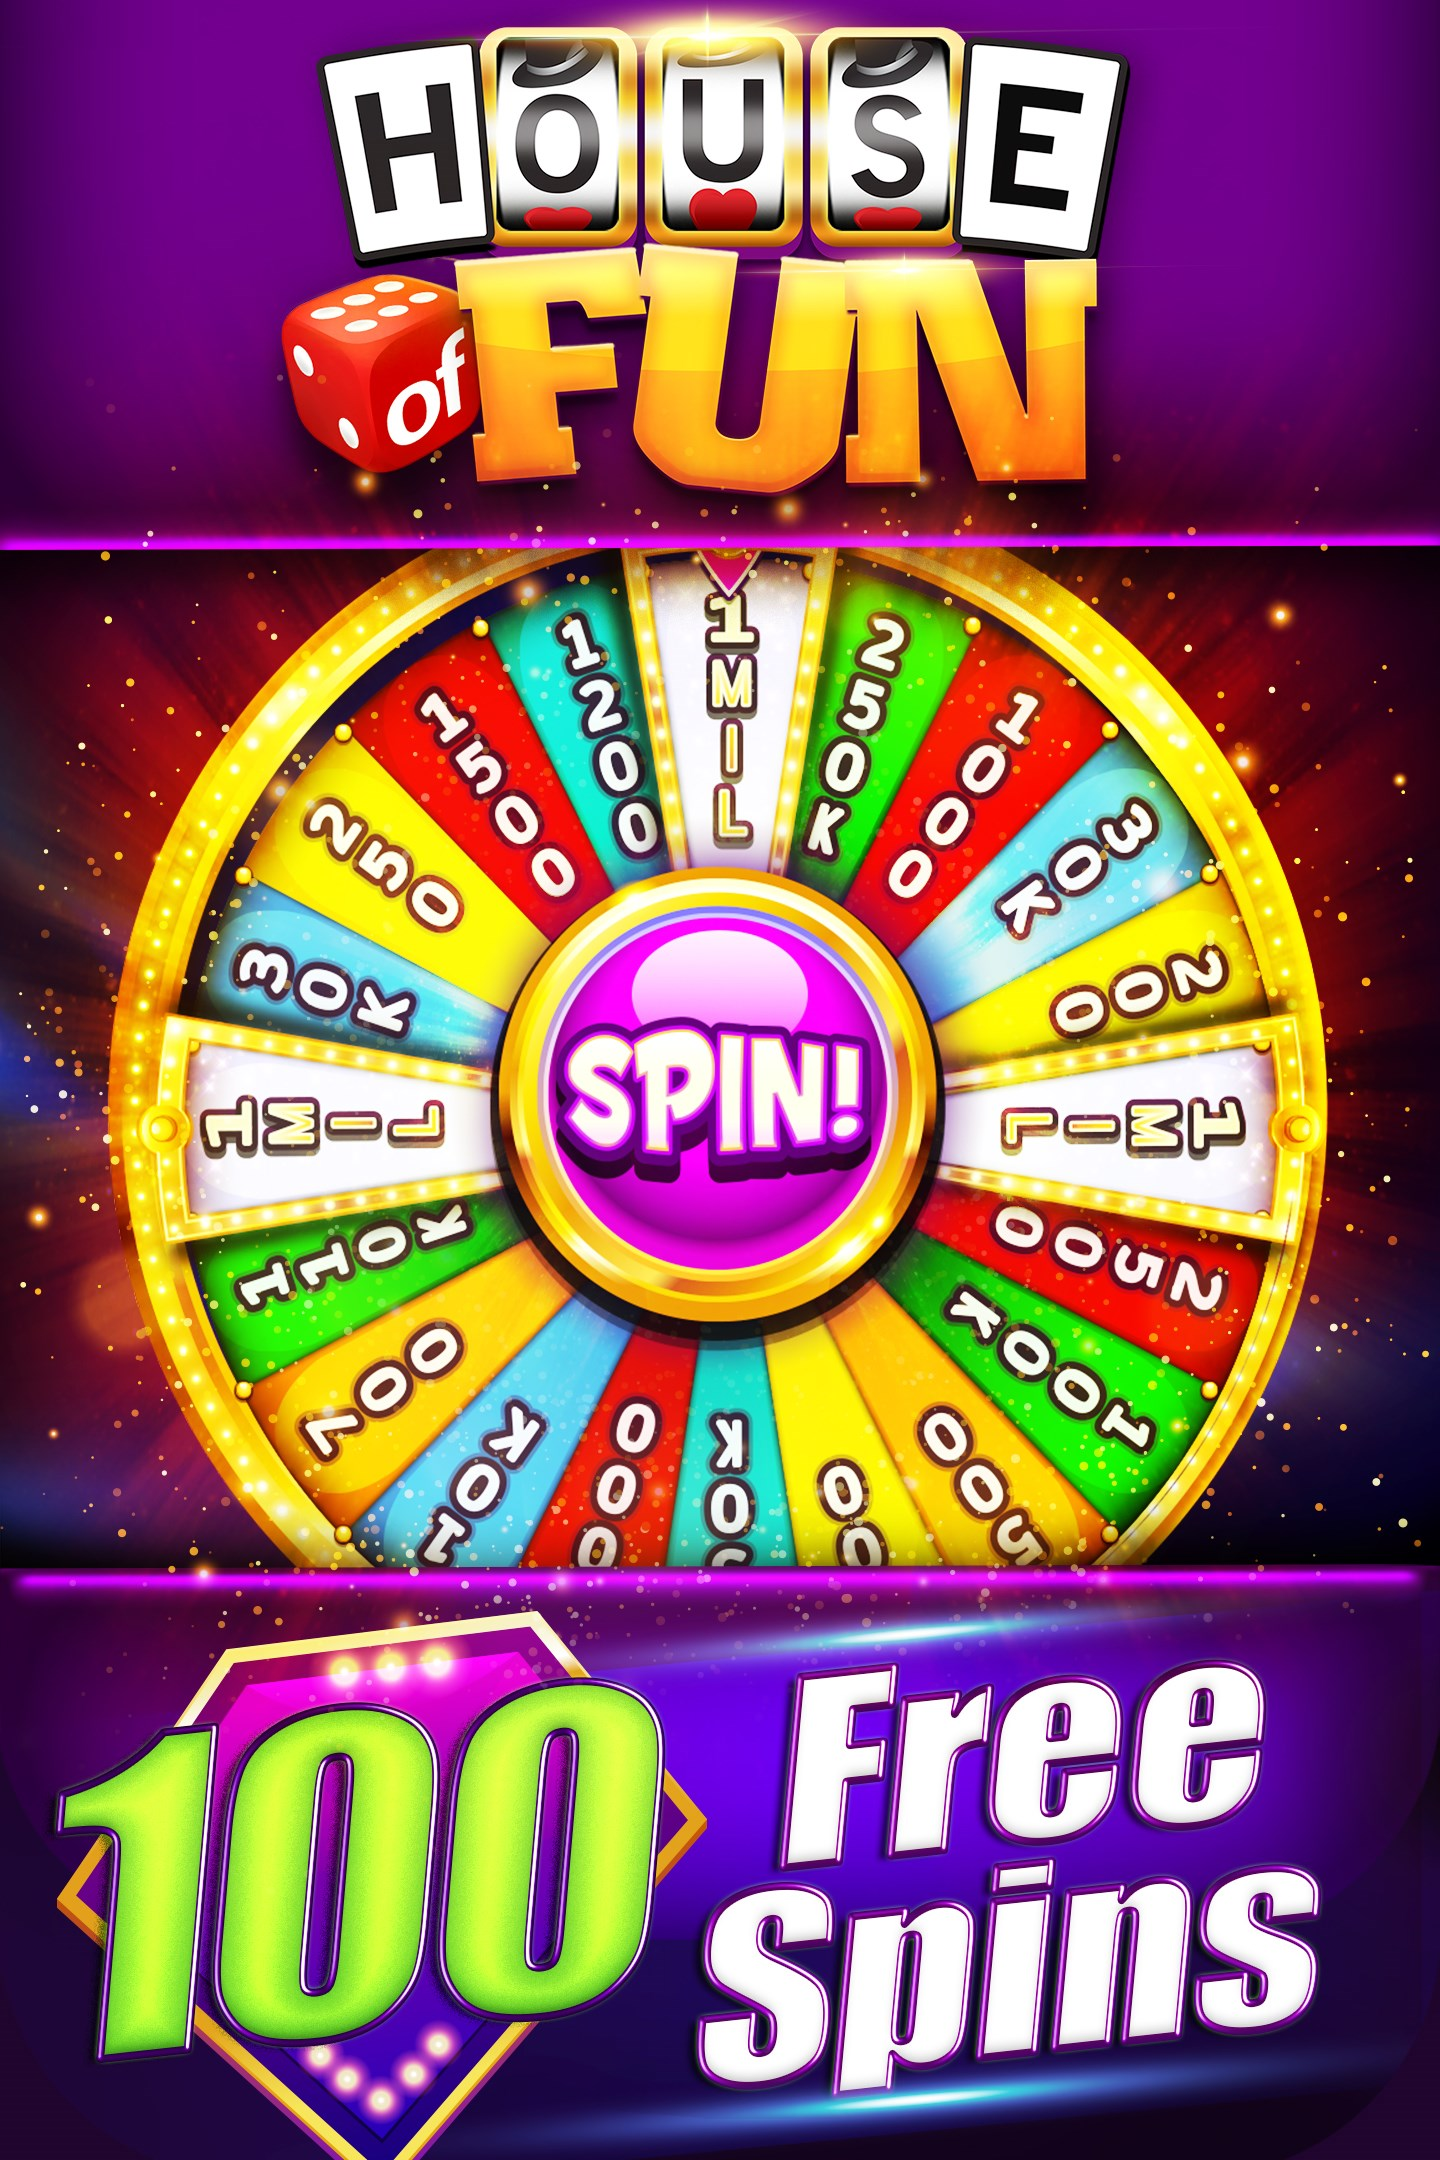 50 Free Spins House Of Fun